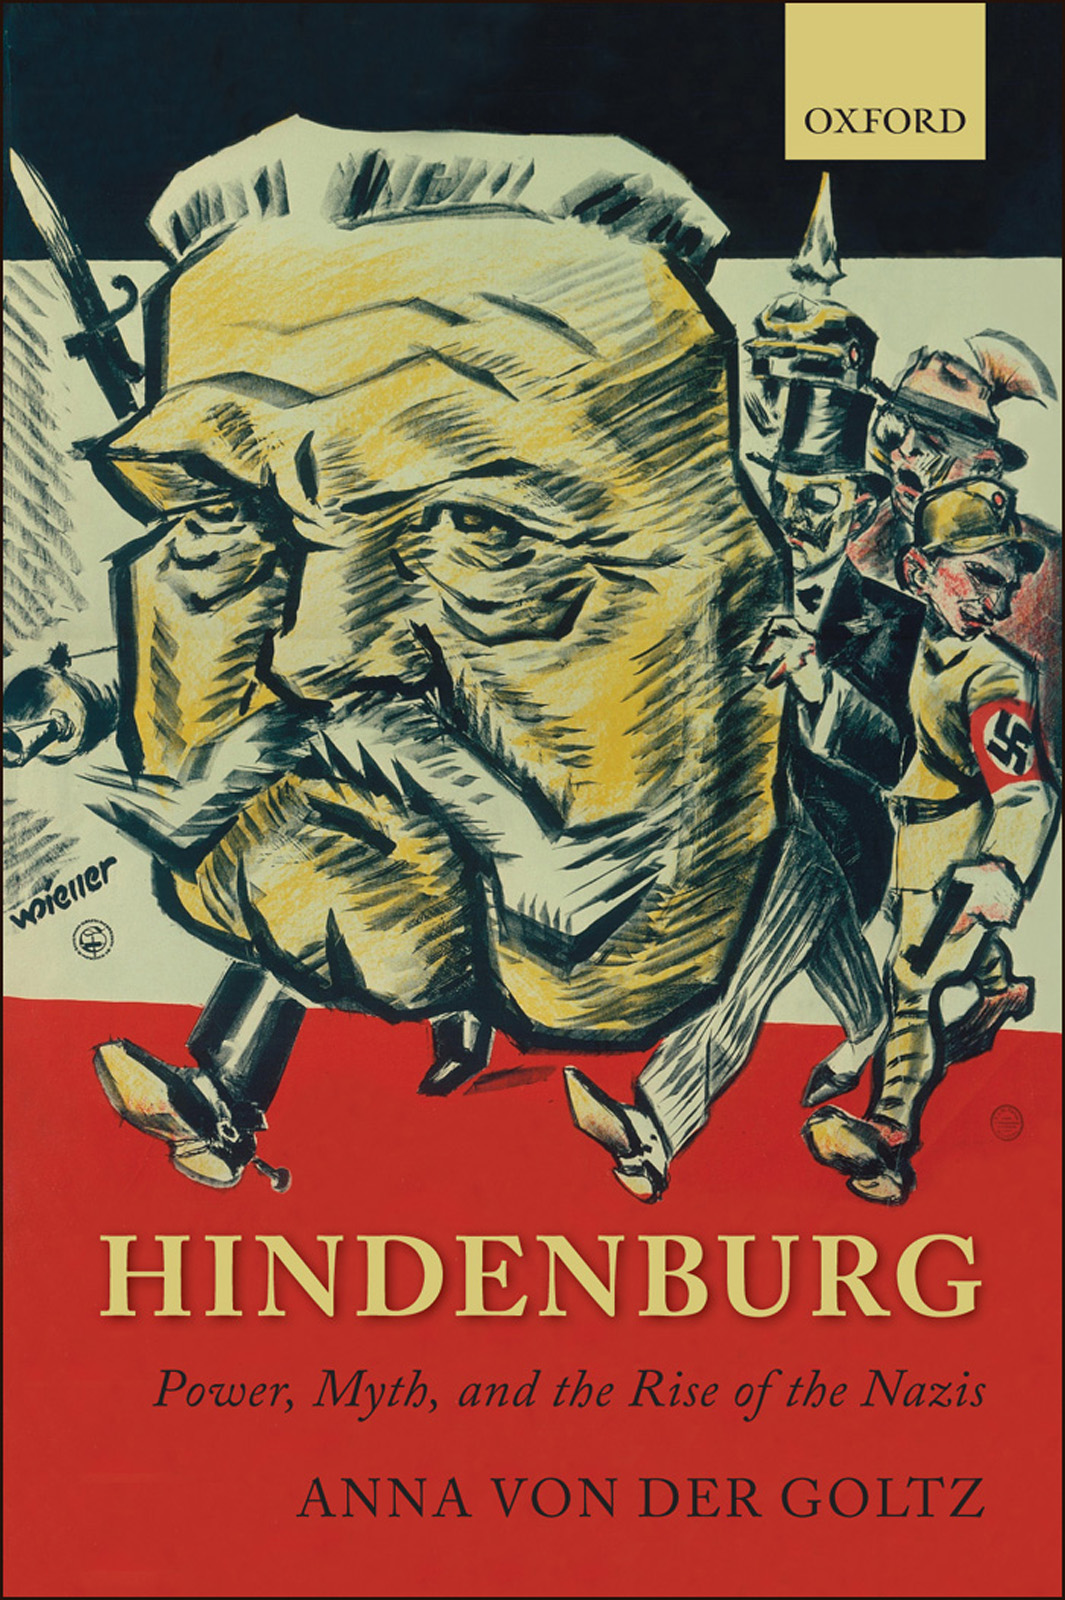 Hindenburg:Power, Myth, and the Rise of the Nazis